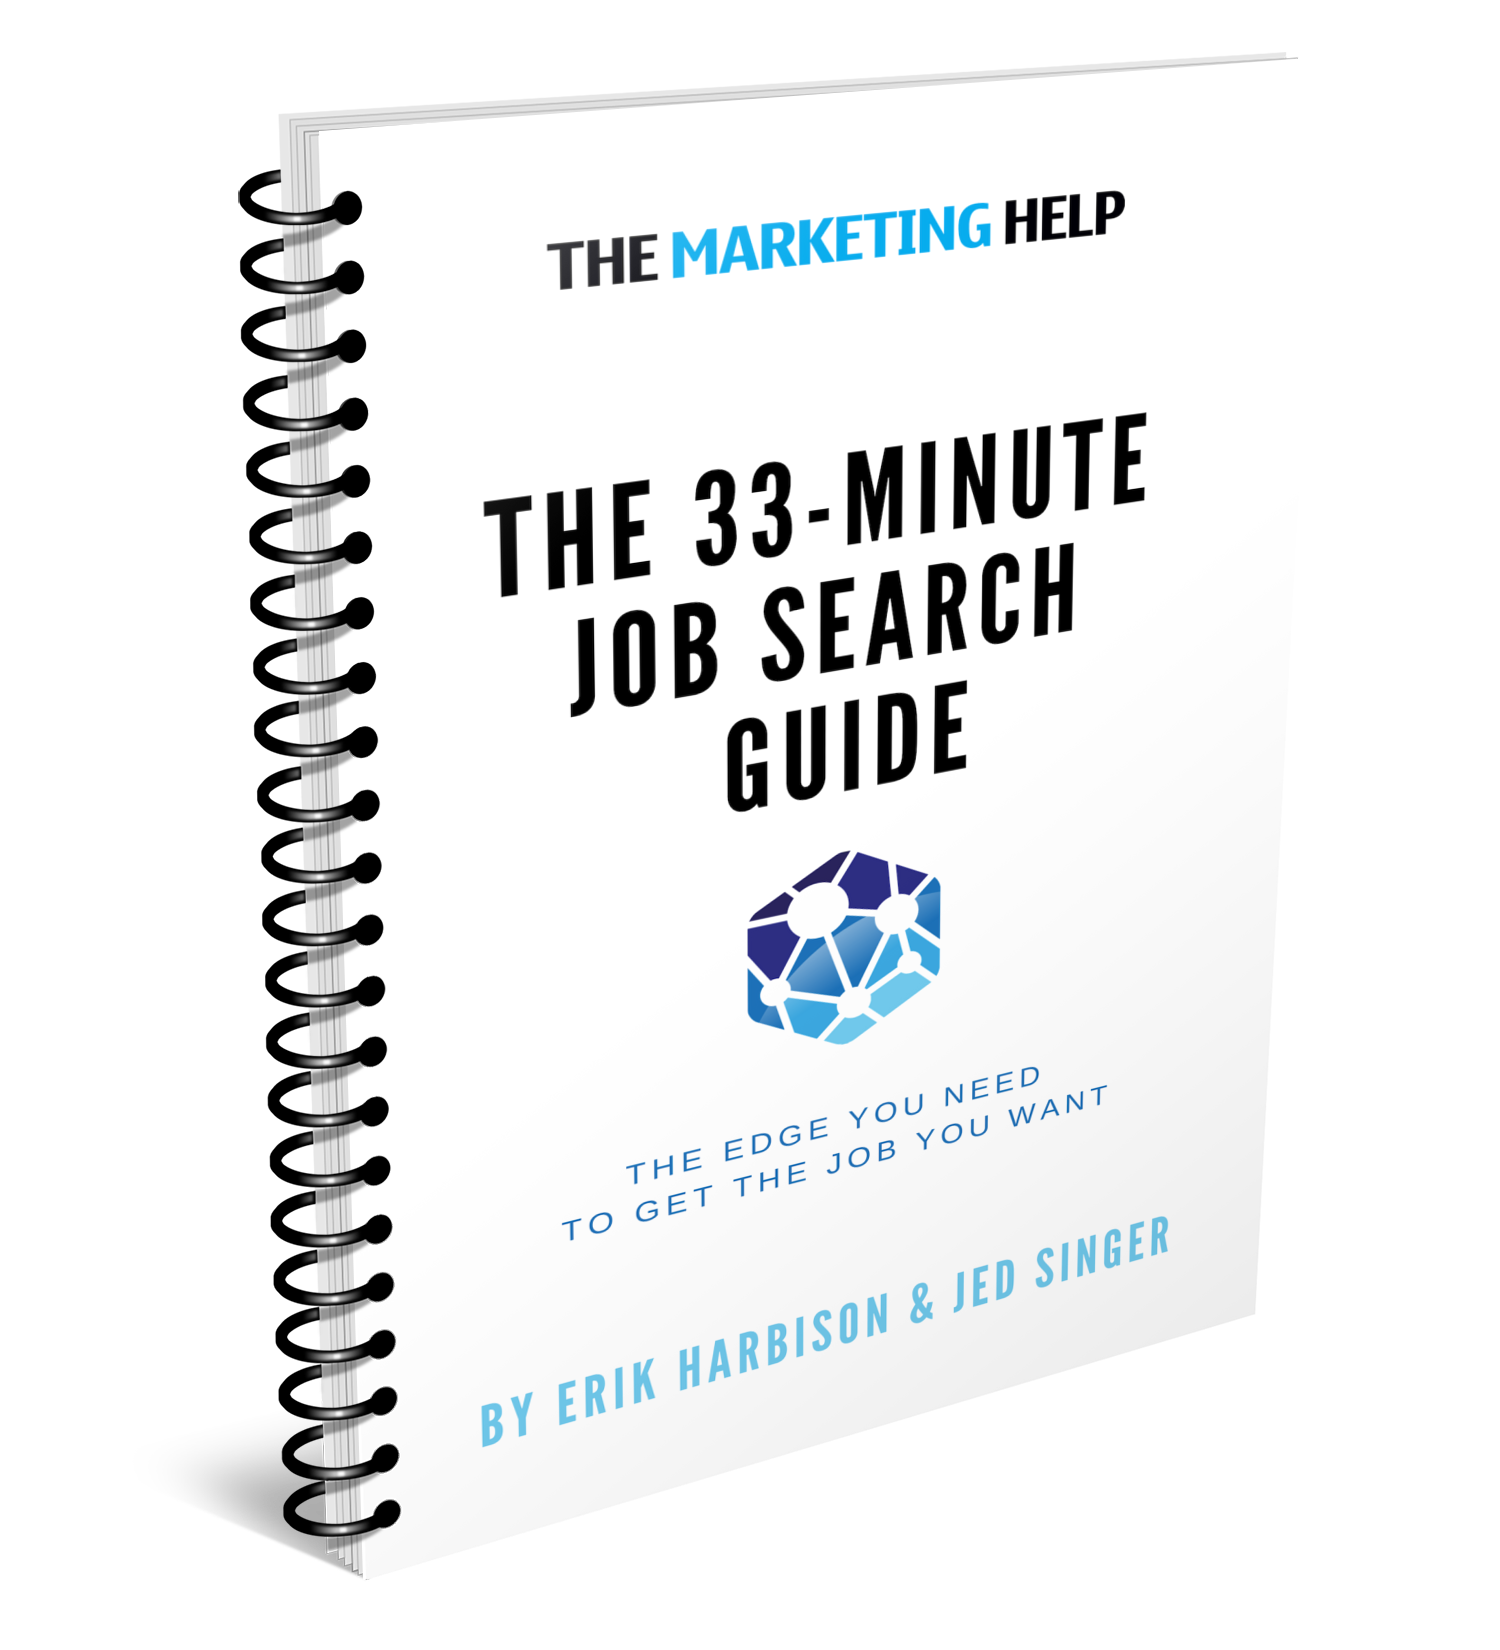 The 33-Minute Job Search Guidebook - Want to land a job in marketing? Here's your shortcut up the trail…Our 33-Minute Guidebooks provide mastery in various career subjects in only — you guessed it — about half an hour.